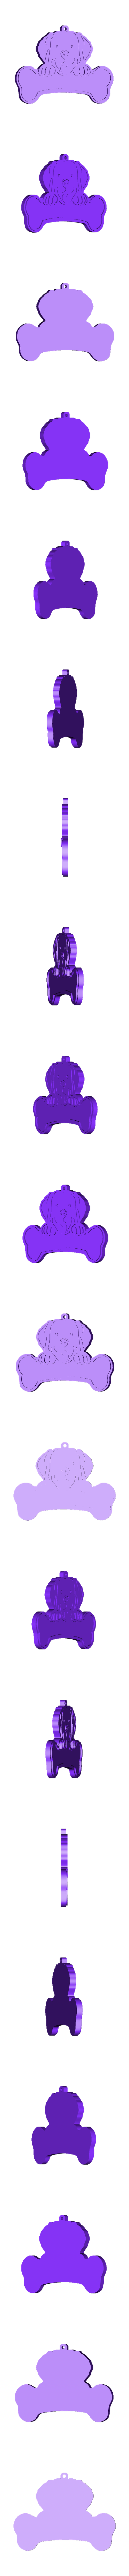 Labrador retriever.stl Download STL file Set x24 Dog tags ( work from home) • 3D printing template, 3dokinfo